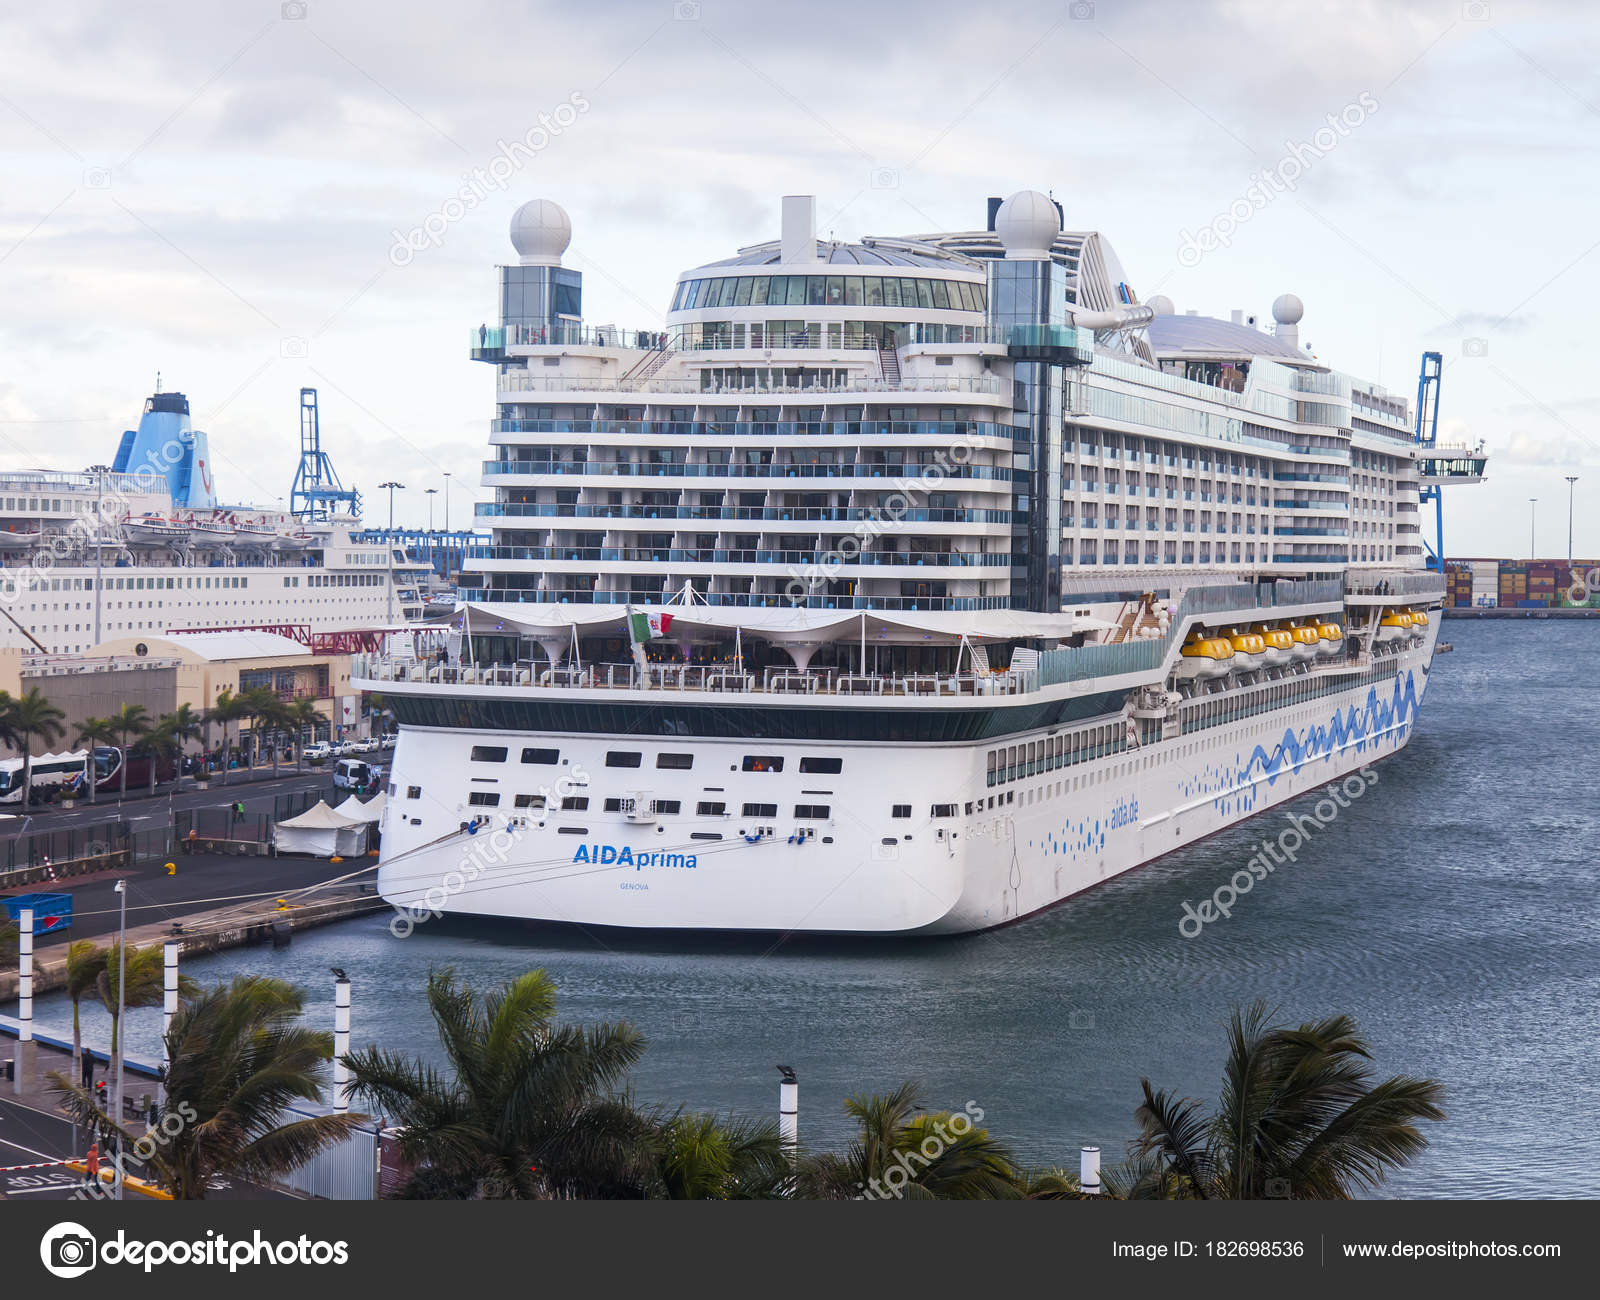 las palmas de gran canaria chat rooms Great savings on hotels in las palmas de gran canaria, spain online good availability and great rates read hotel reviews and choose the best hotel deal for your stay.